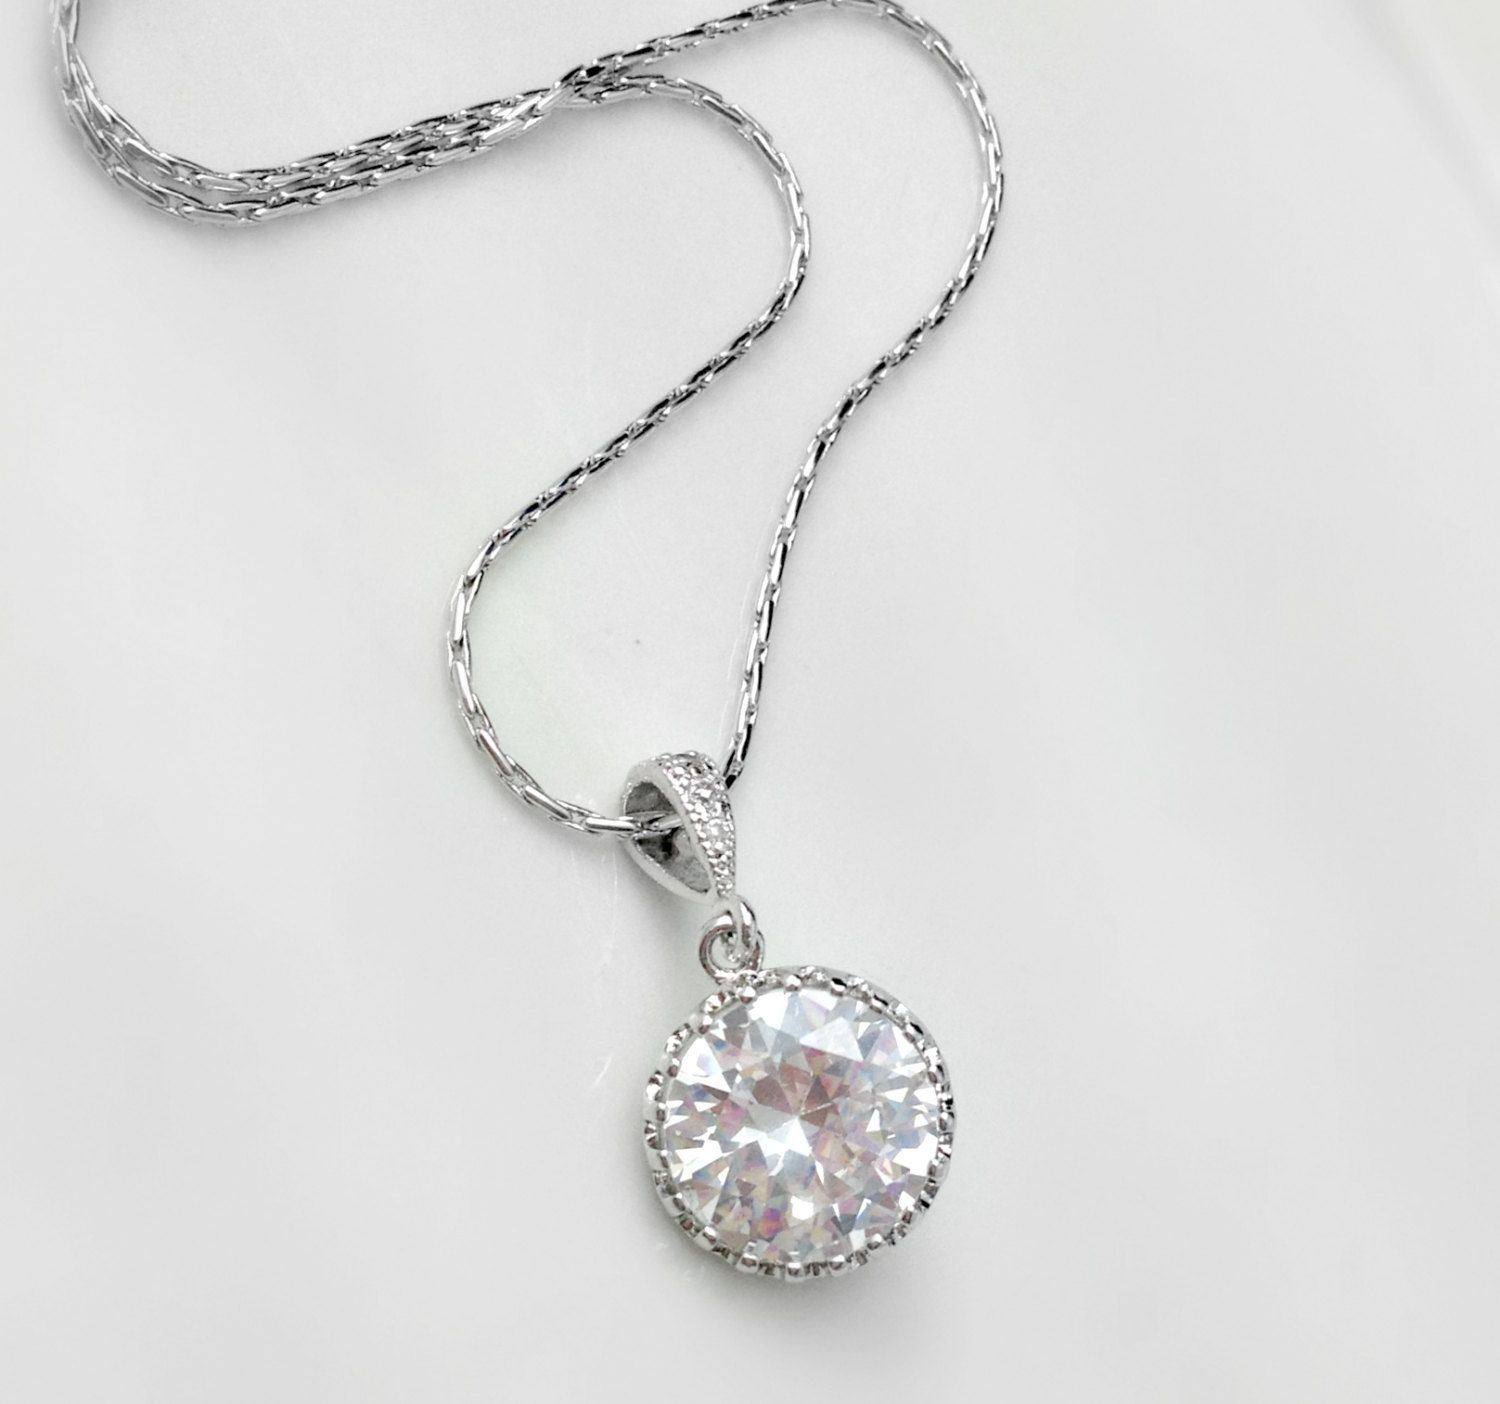 Crystal And White Wedding Theme: White Crystal Bridal Necklace Round Cubic Zirconia Bride